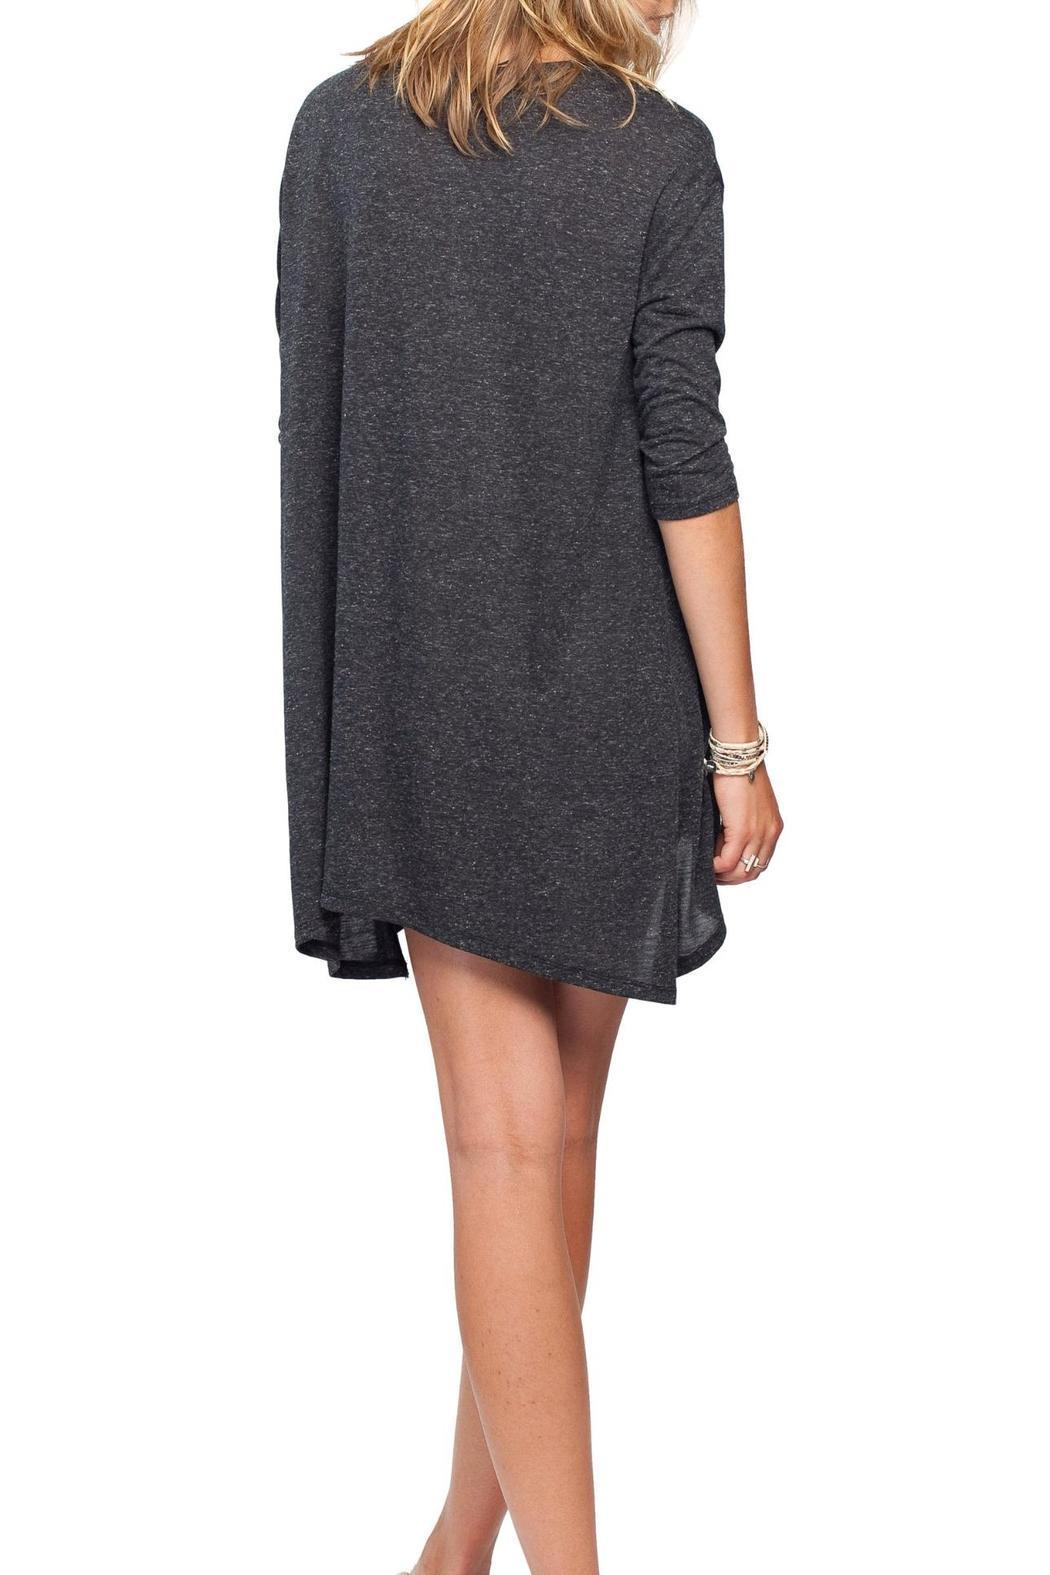 Gentle Fawn Etienne Speckle Dress - Front Cropped Image